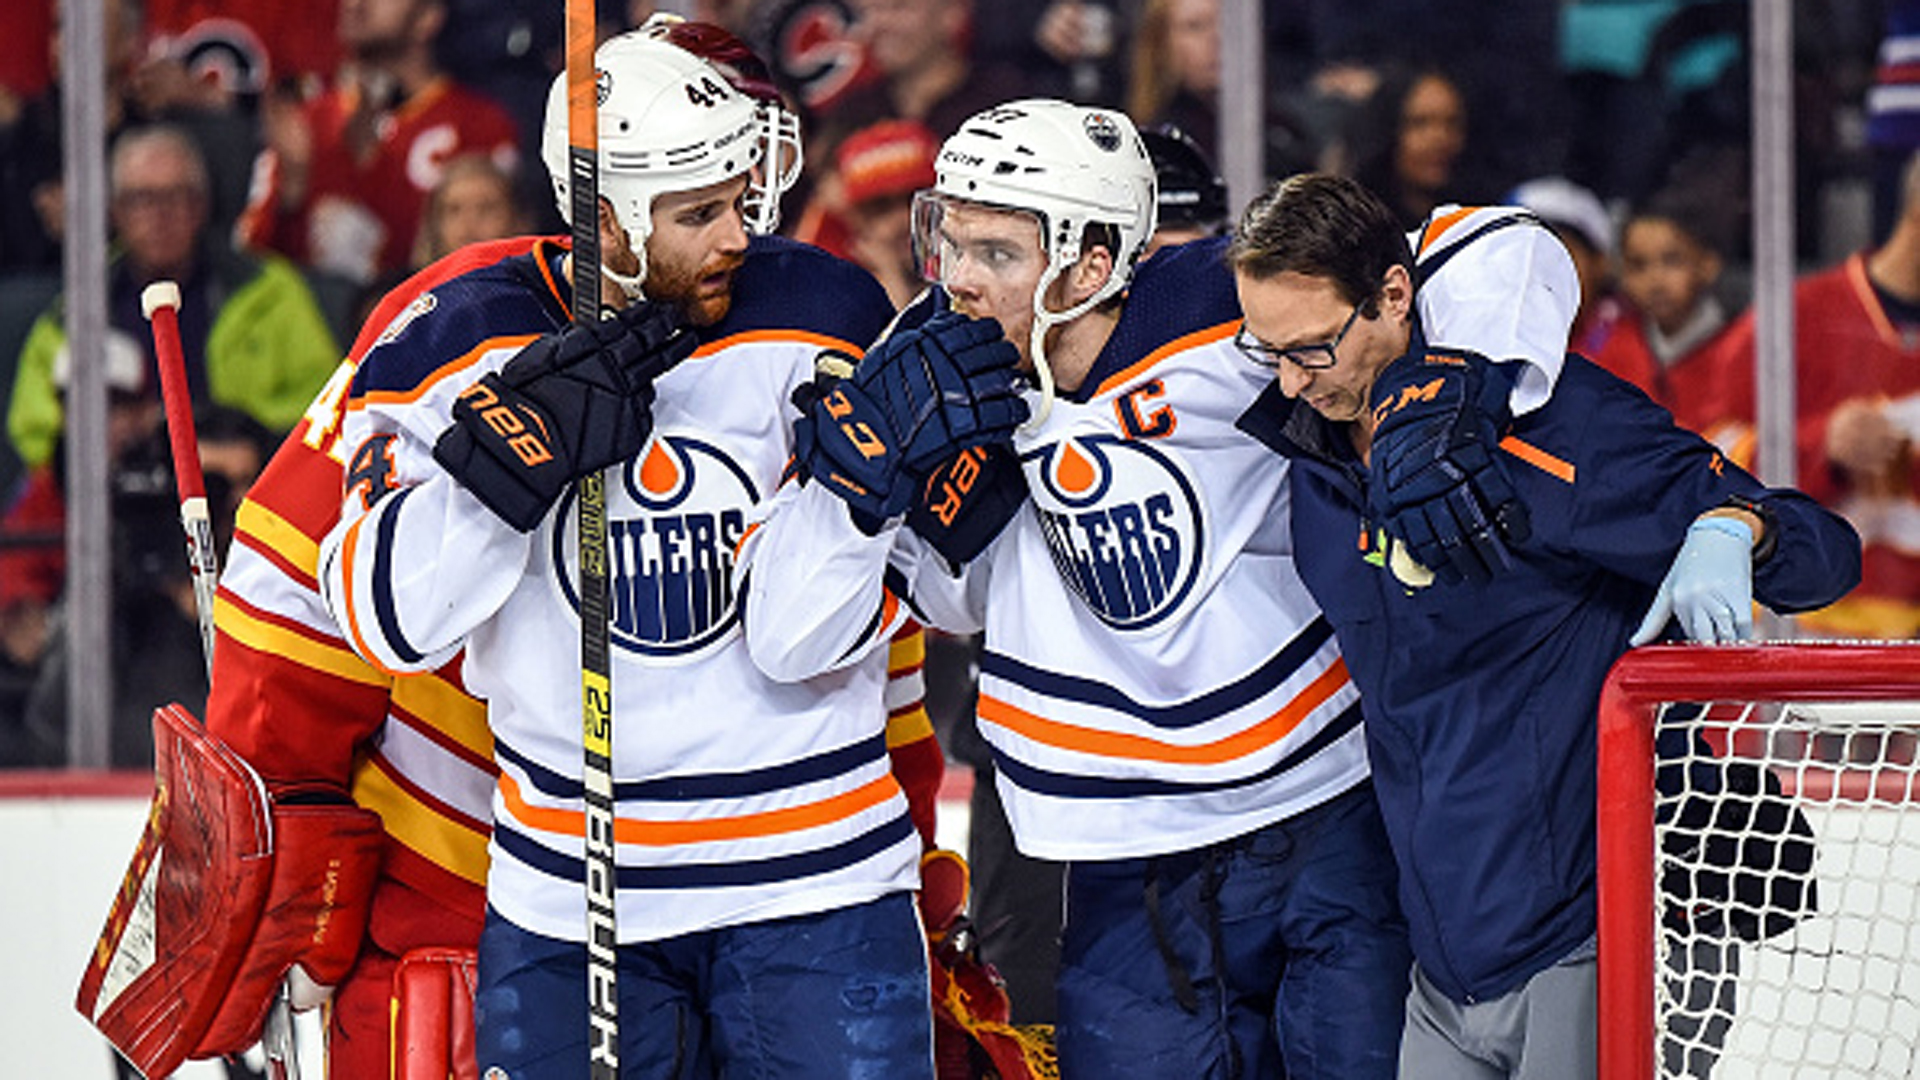 Holland says McDavid will play one pre-season game 'at most'